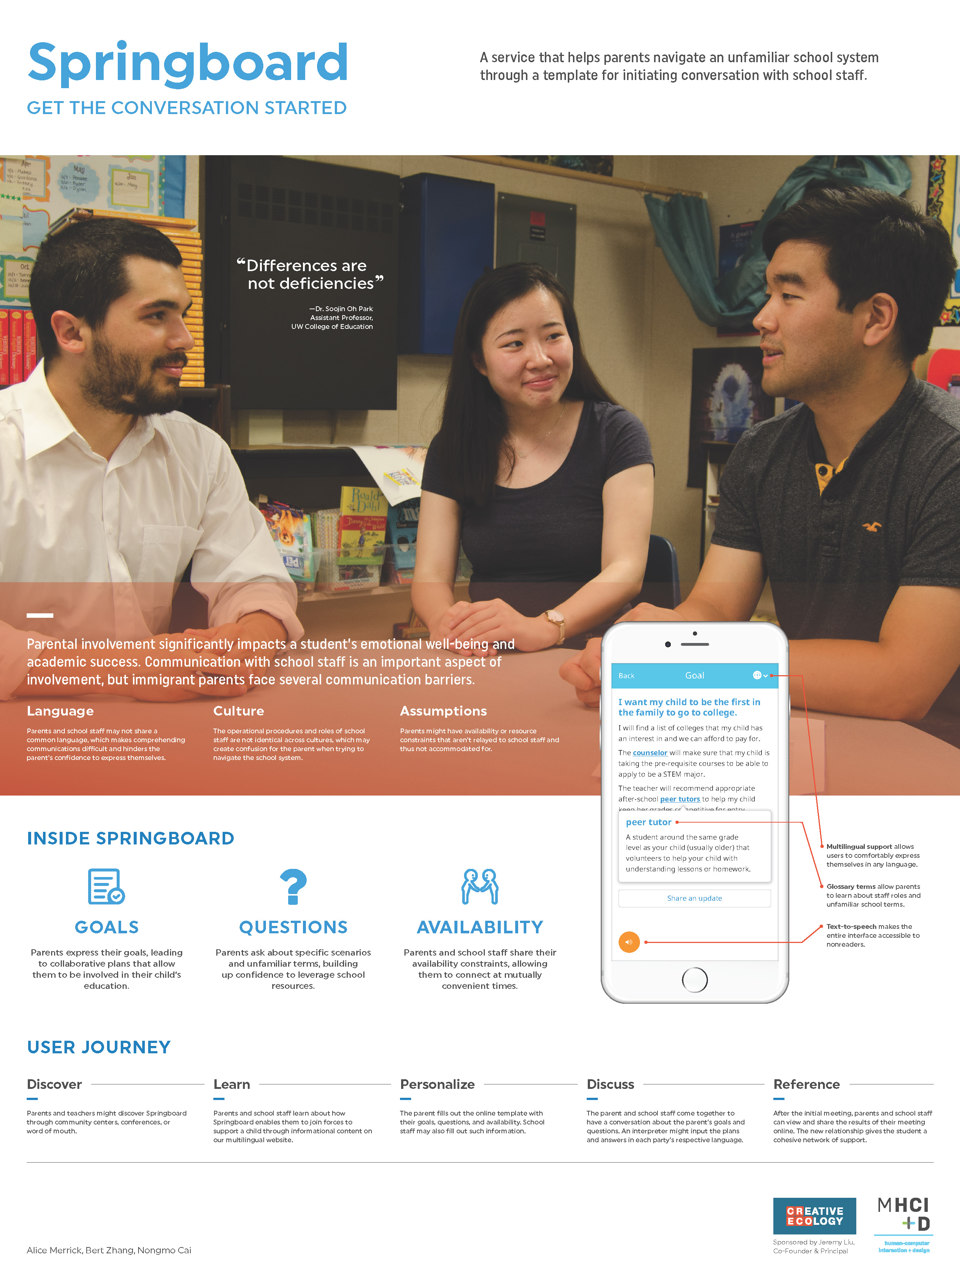 Poster with image of teacher, interpreter, and parent discussing. Text and graphics explain unique problems immigrant parents have, how the application Springboard works, and a user journey.